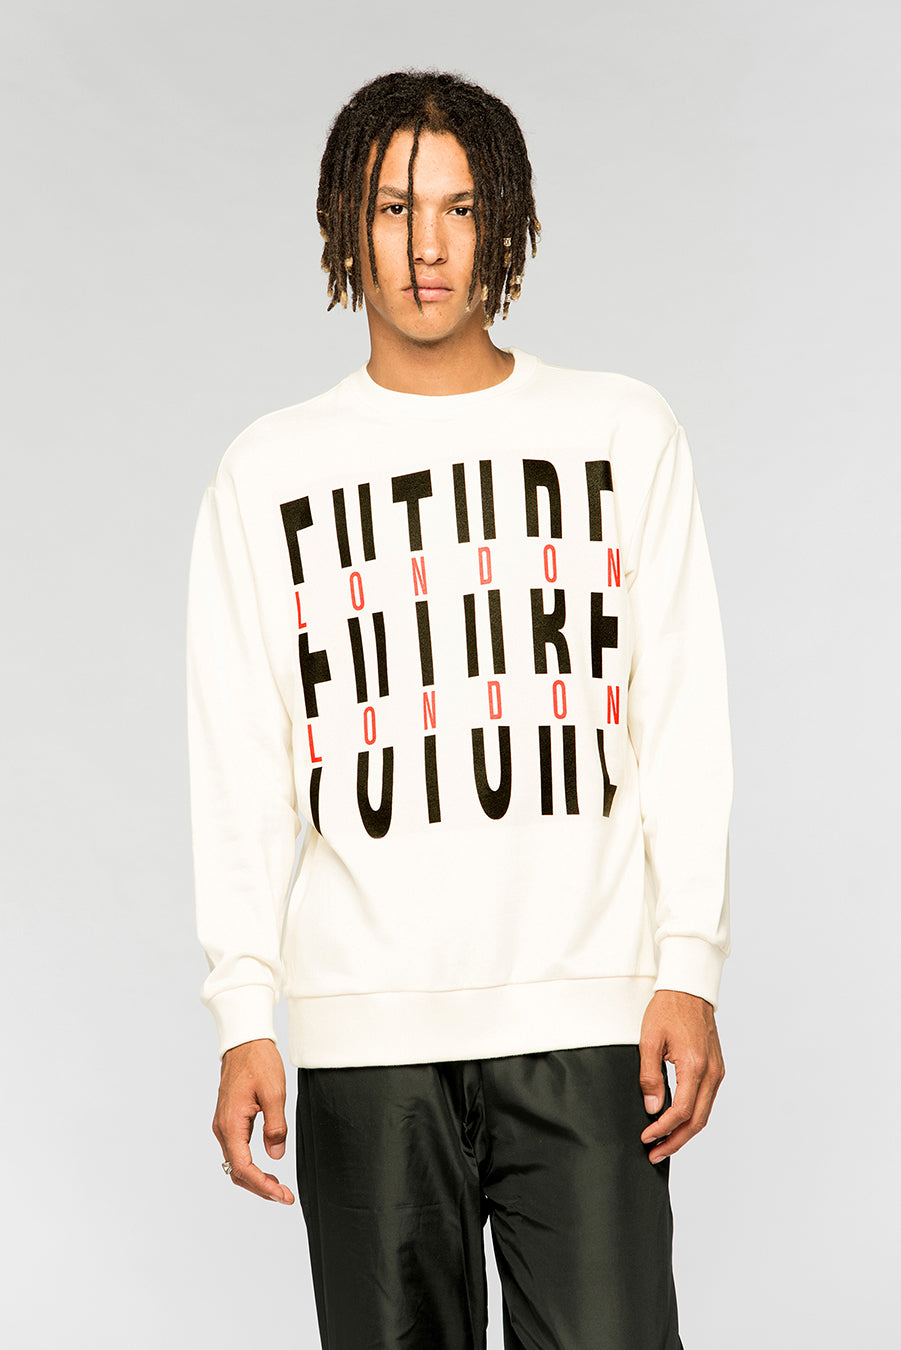 new_future_london_fracture_logo_t_shirt_white_5-1.jpg